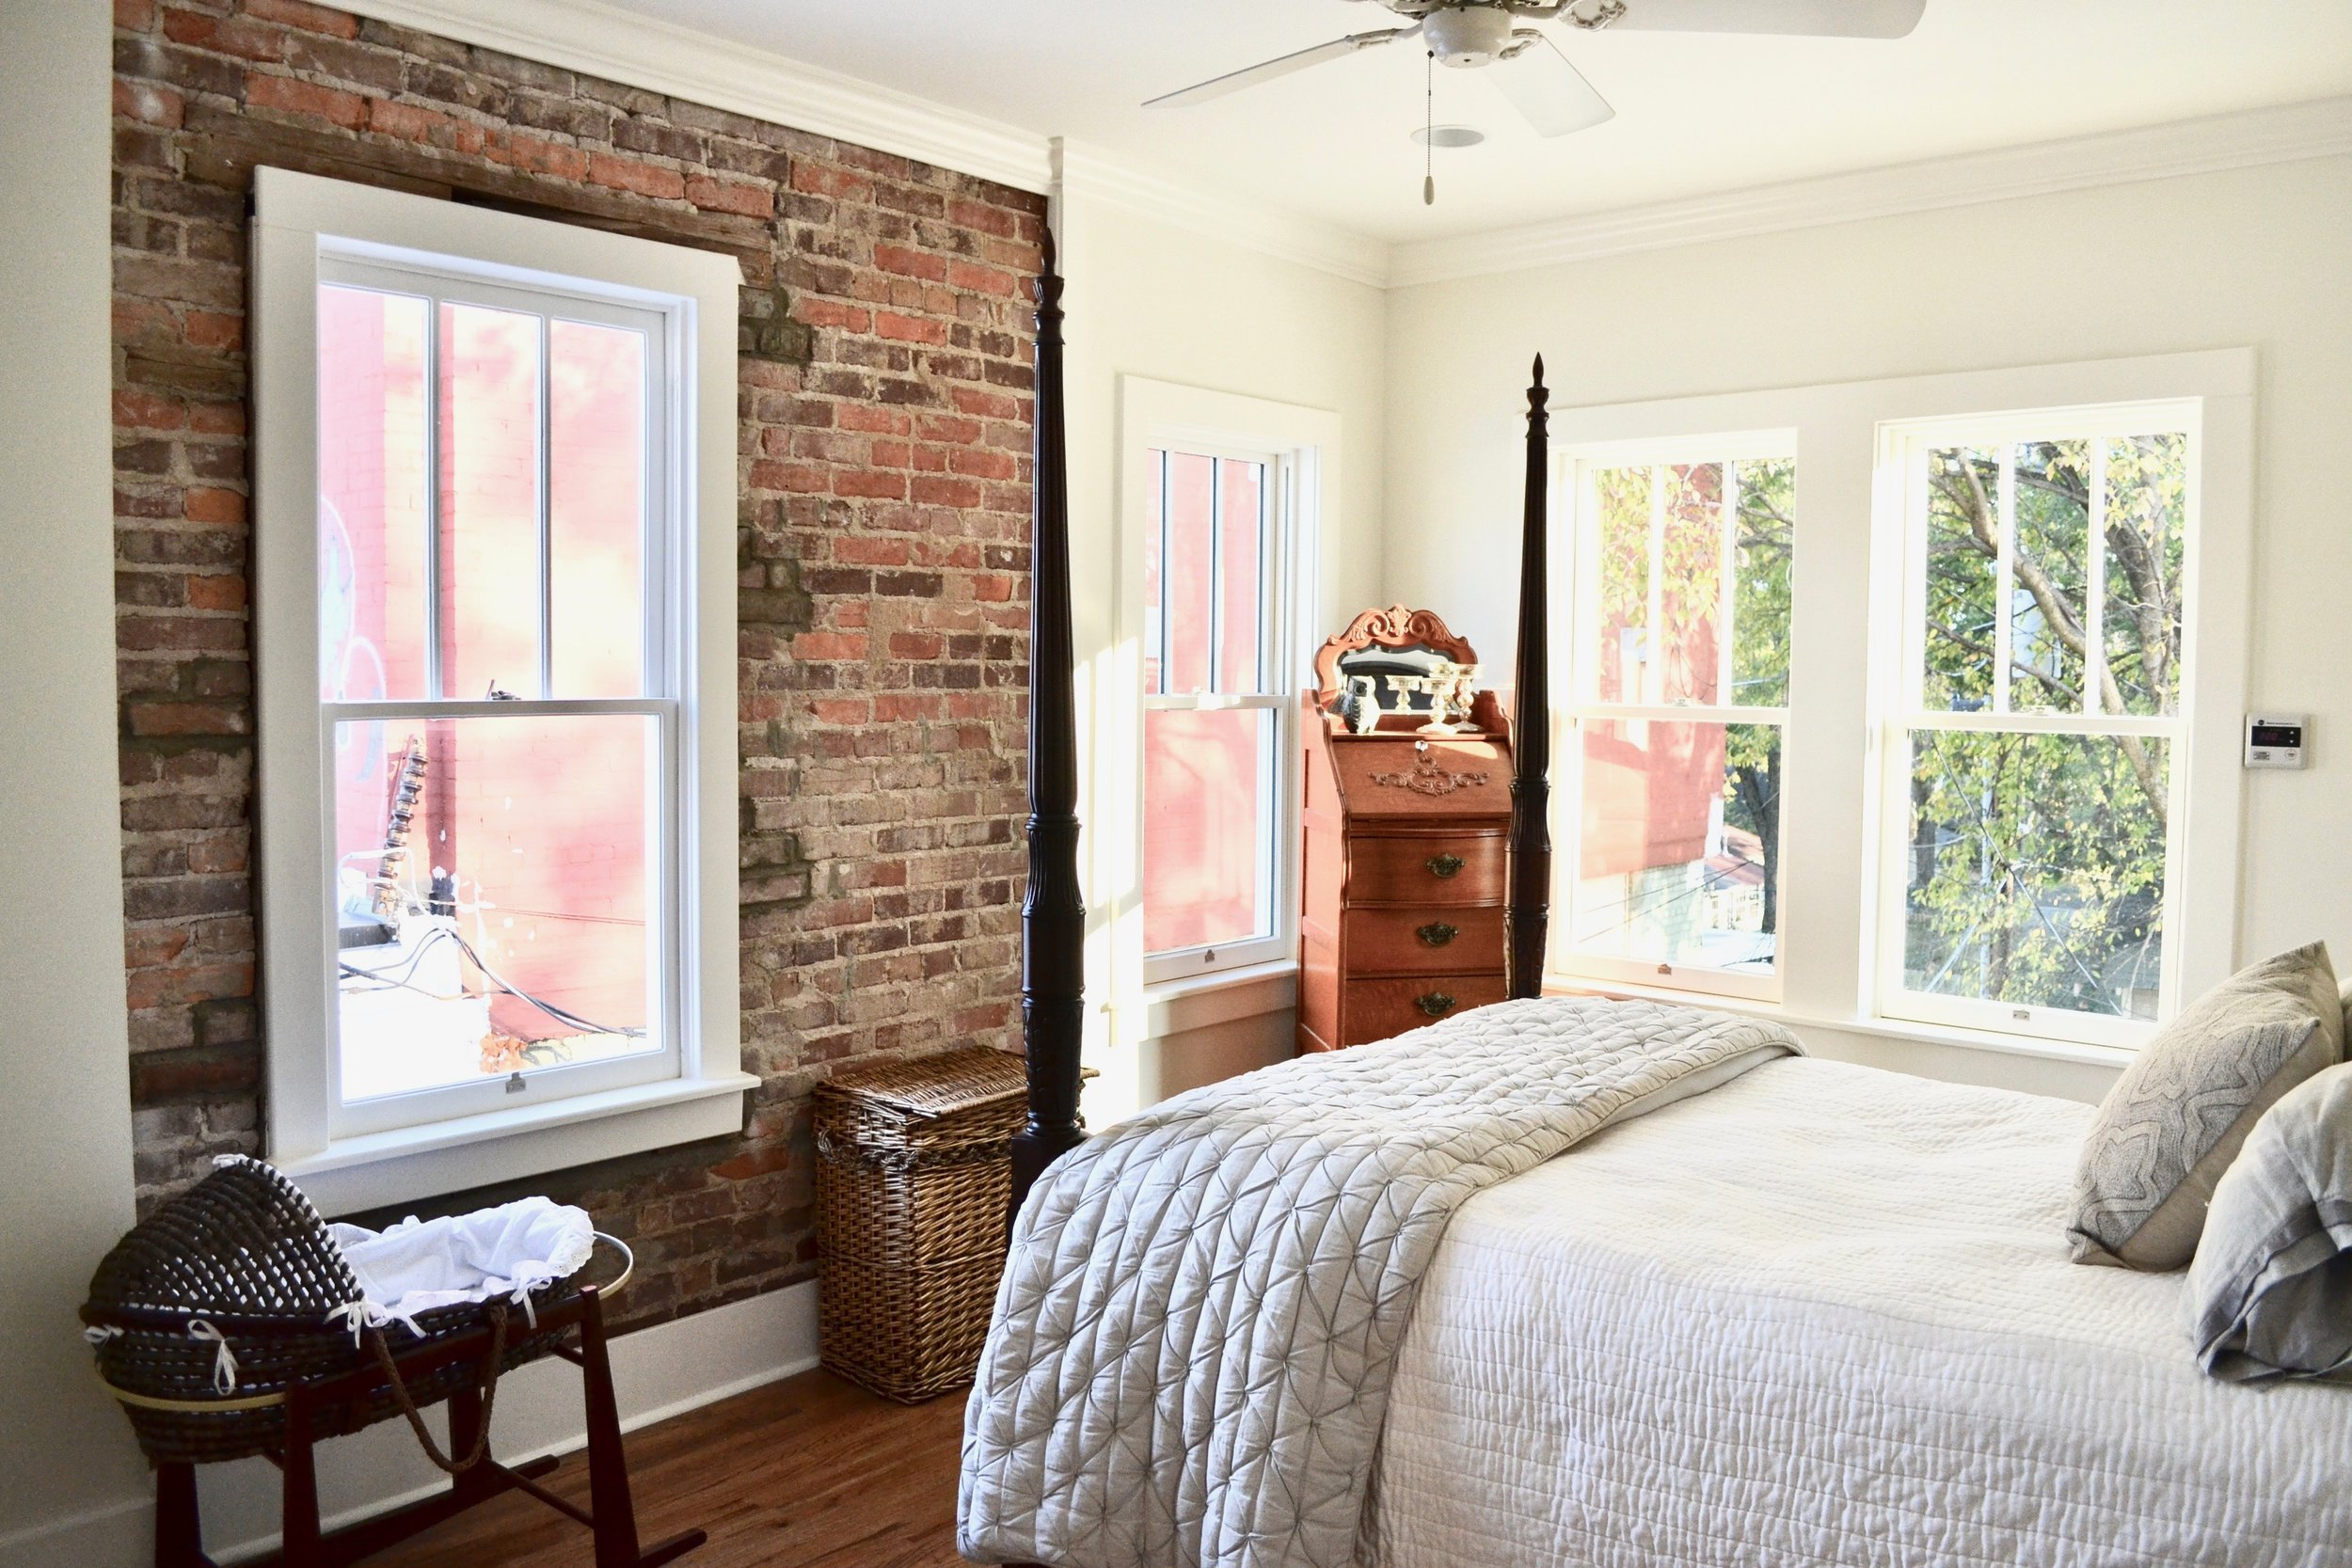 Historic Buice Pharmacy building in Stifft Station, Little Rock. Contemporary apartment renovation by Rogue Architecture.